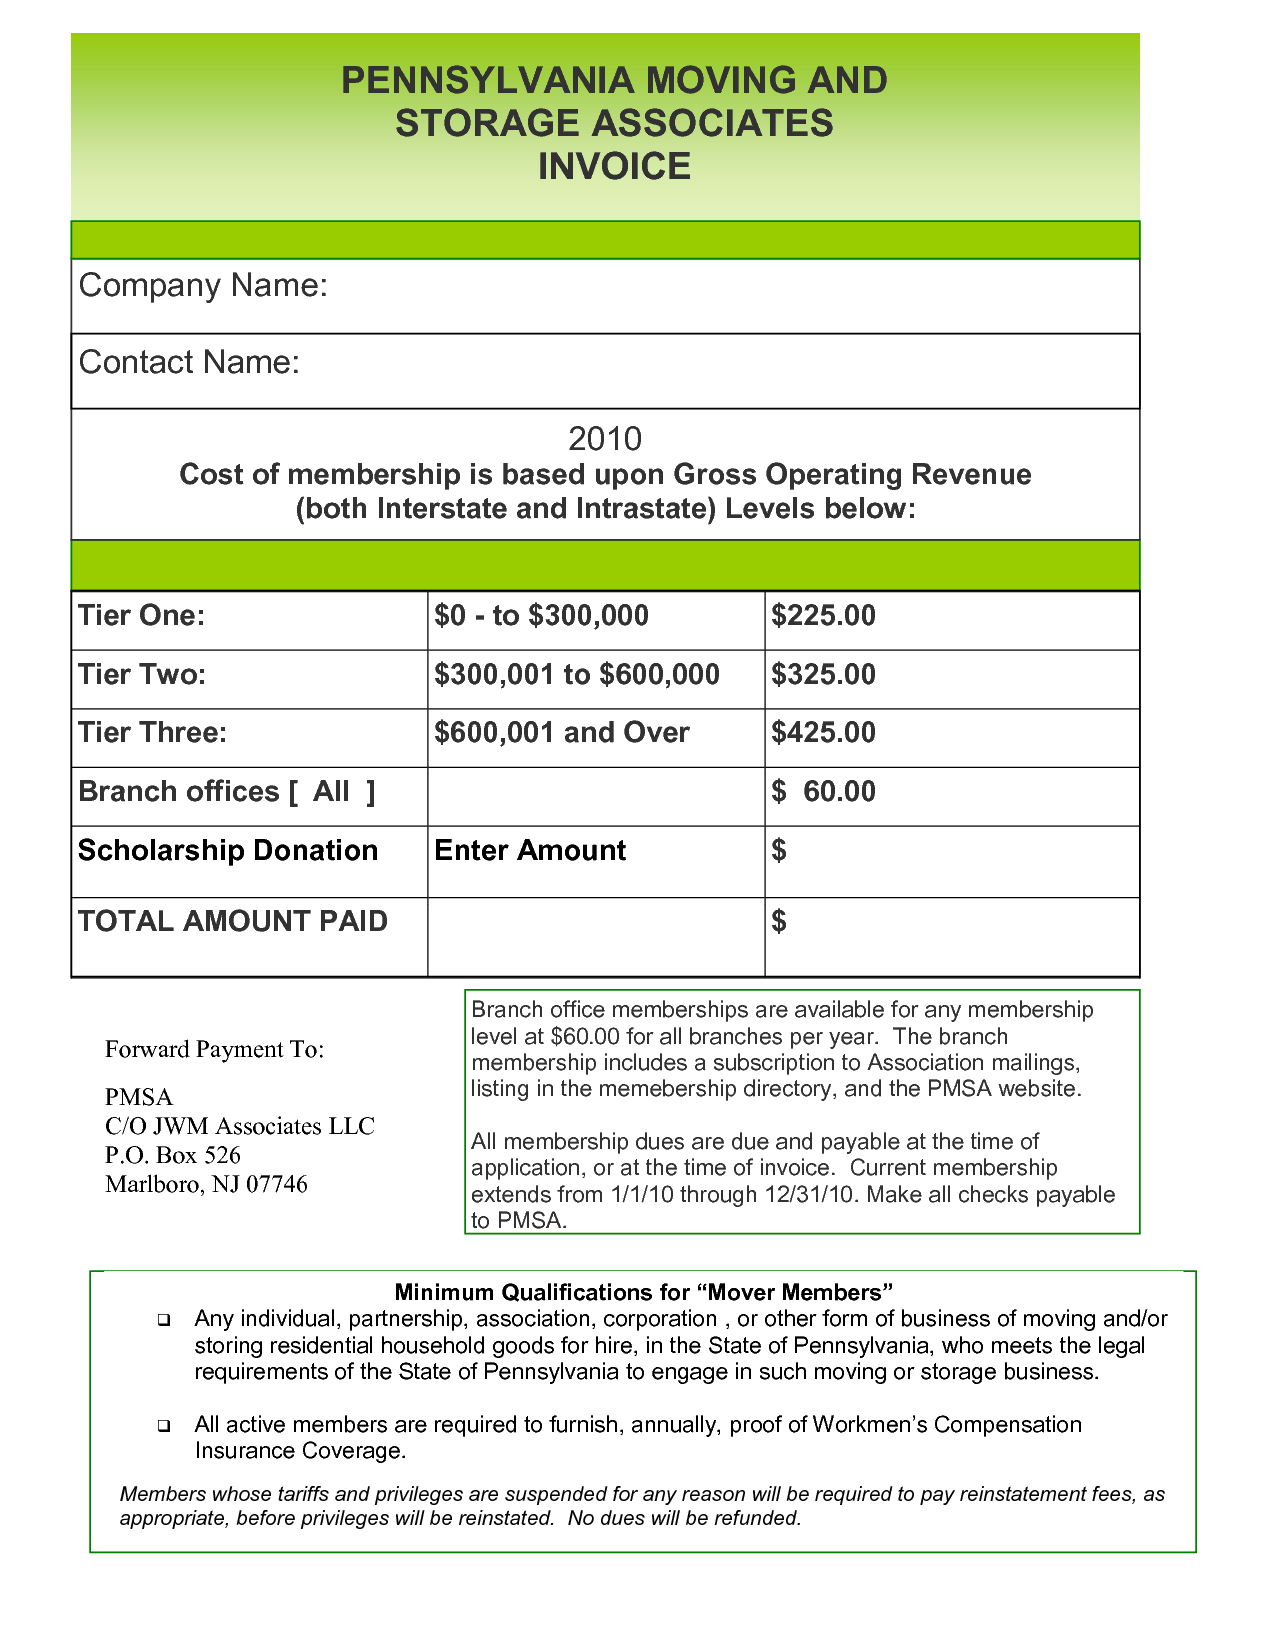 Moving Company Invoice Template Free and Invoice Template Media Templates Part 3